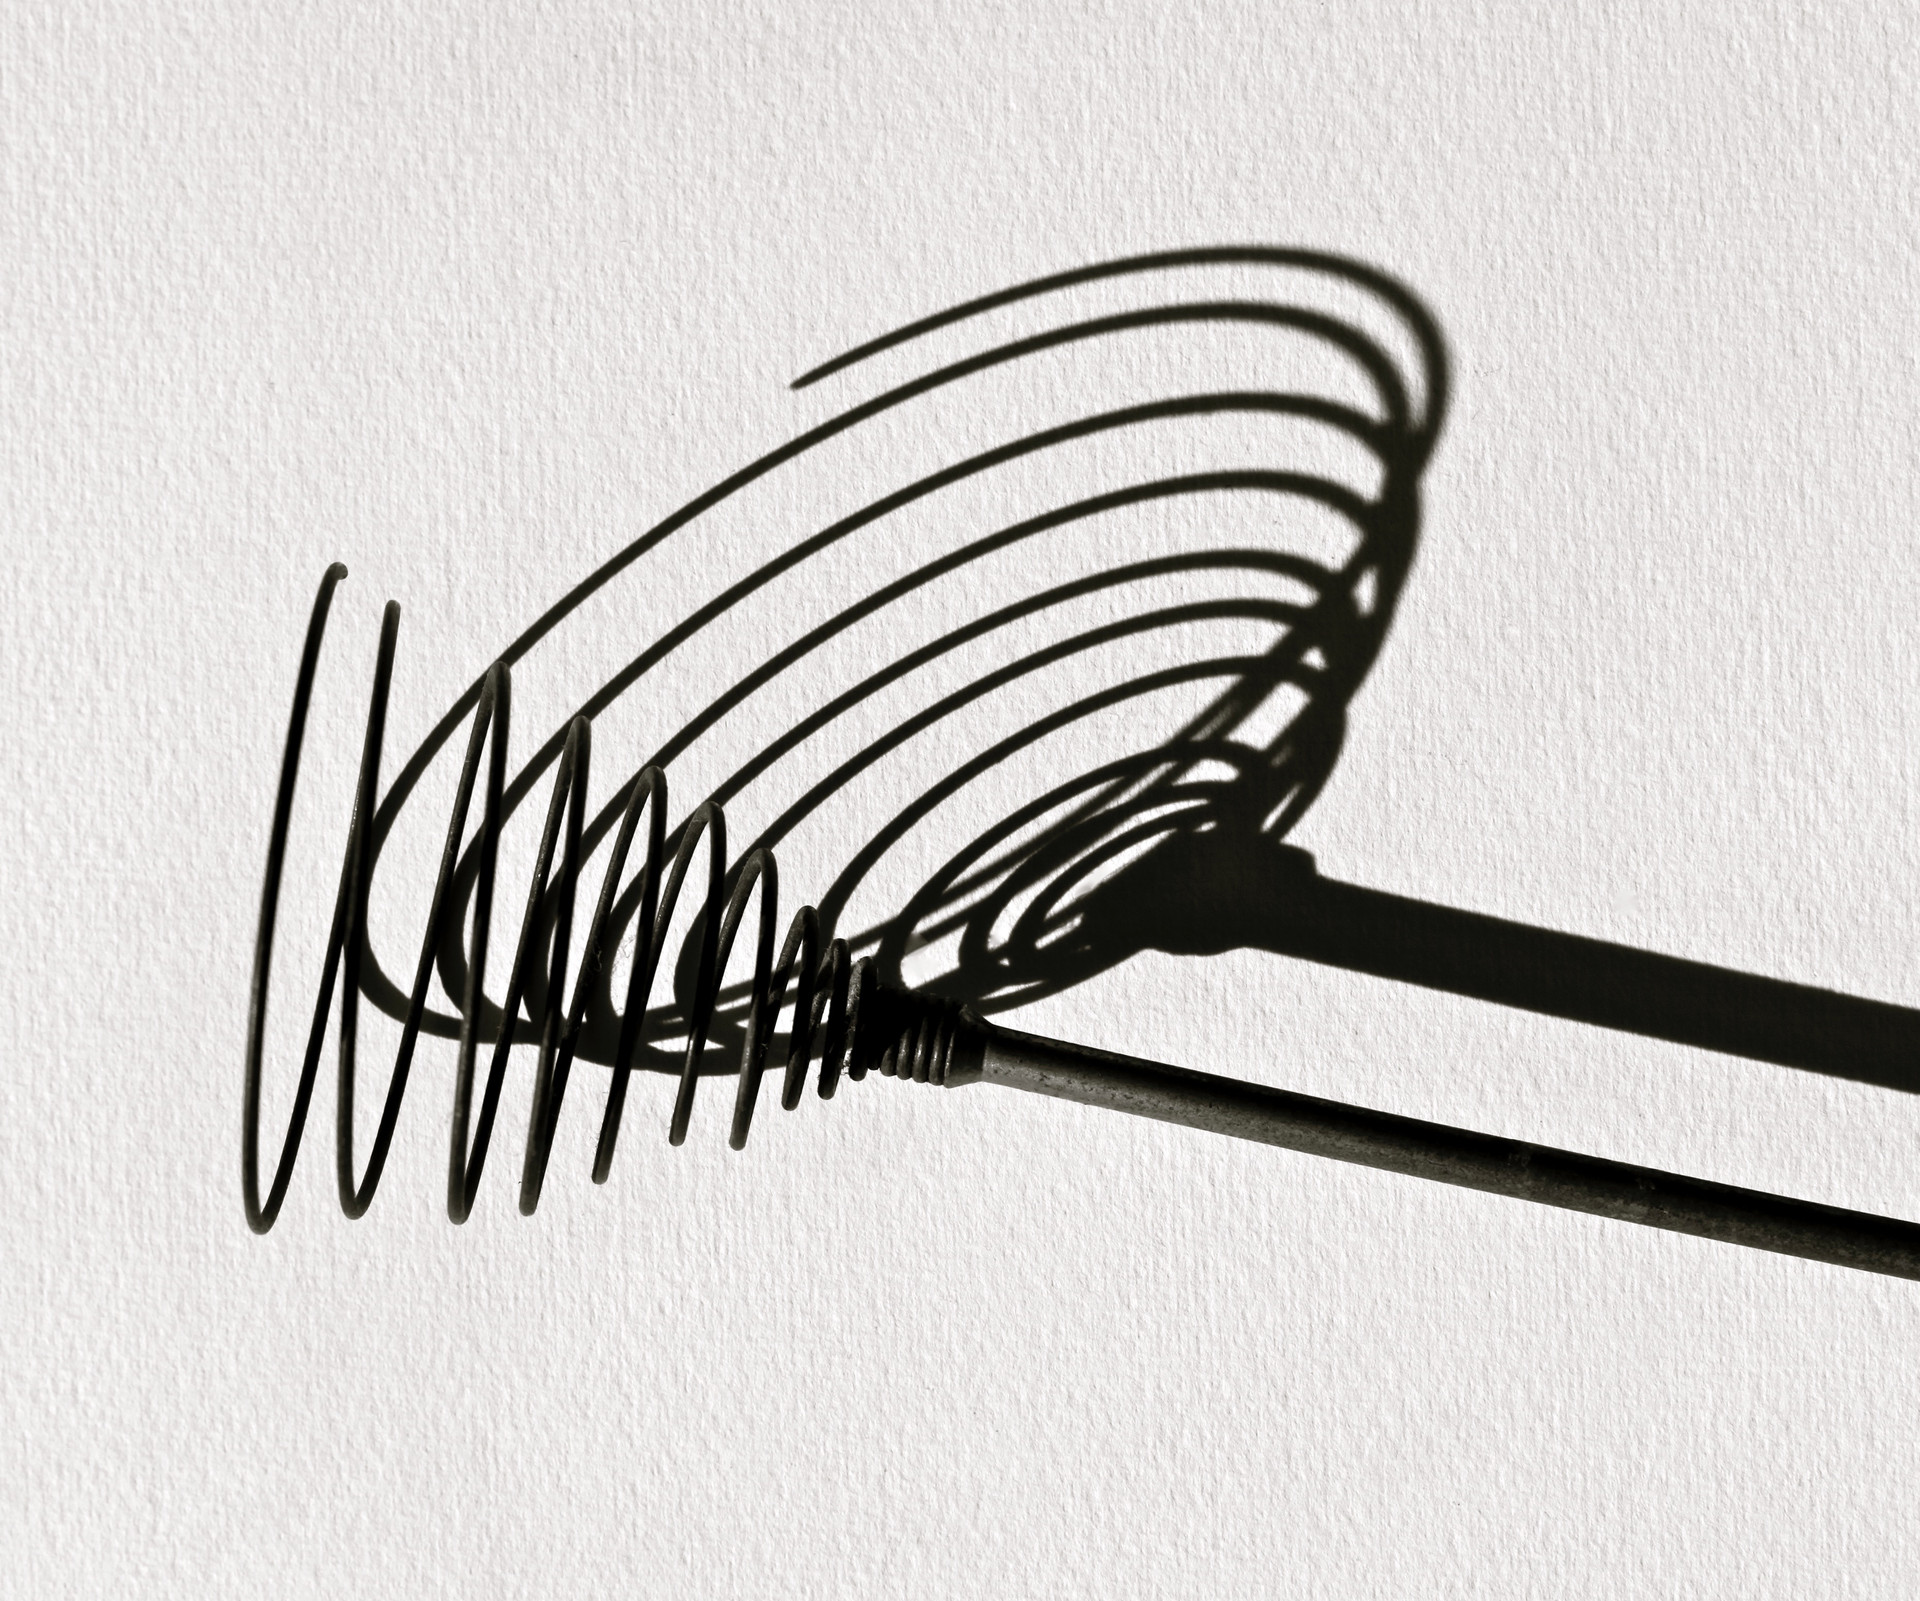 Cone Whisk 1